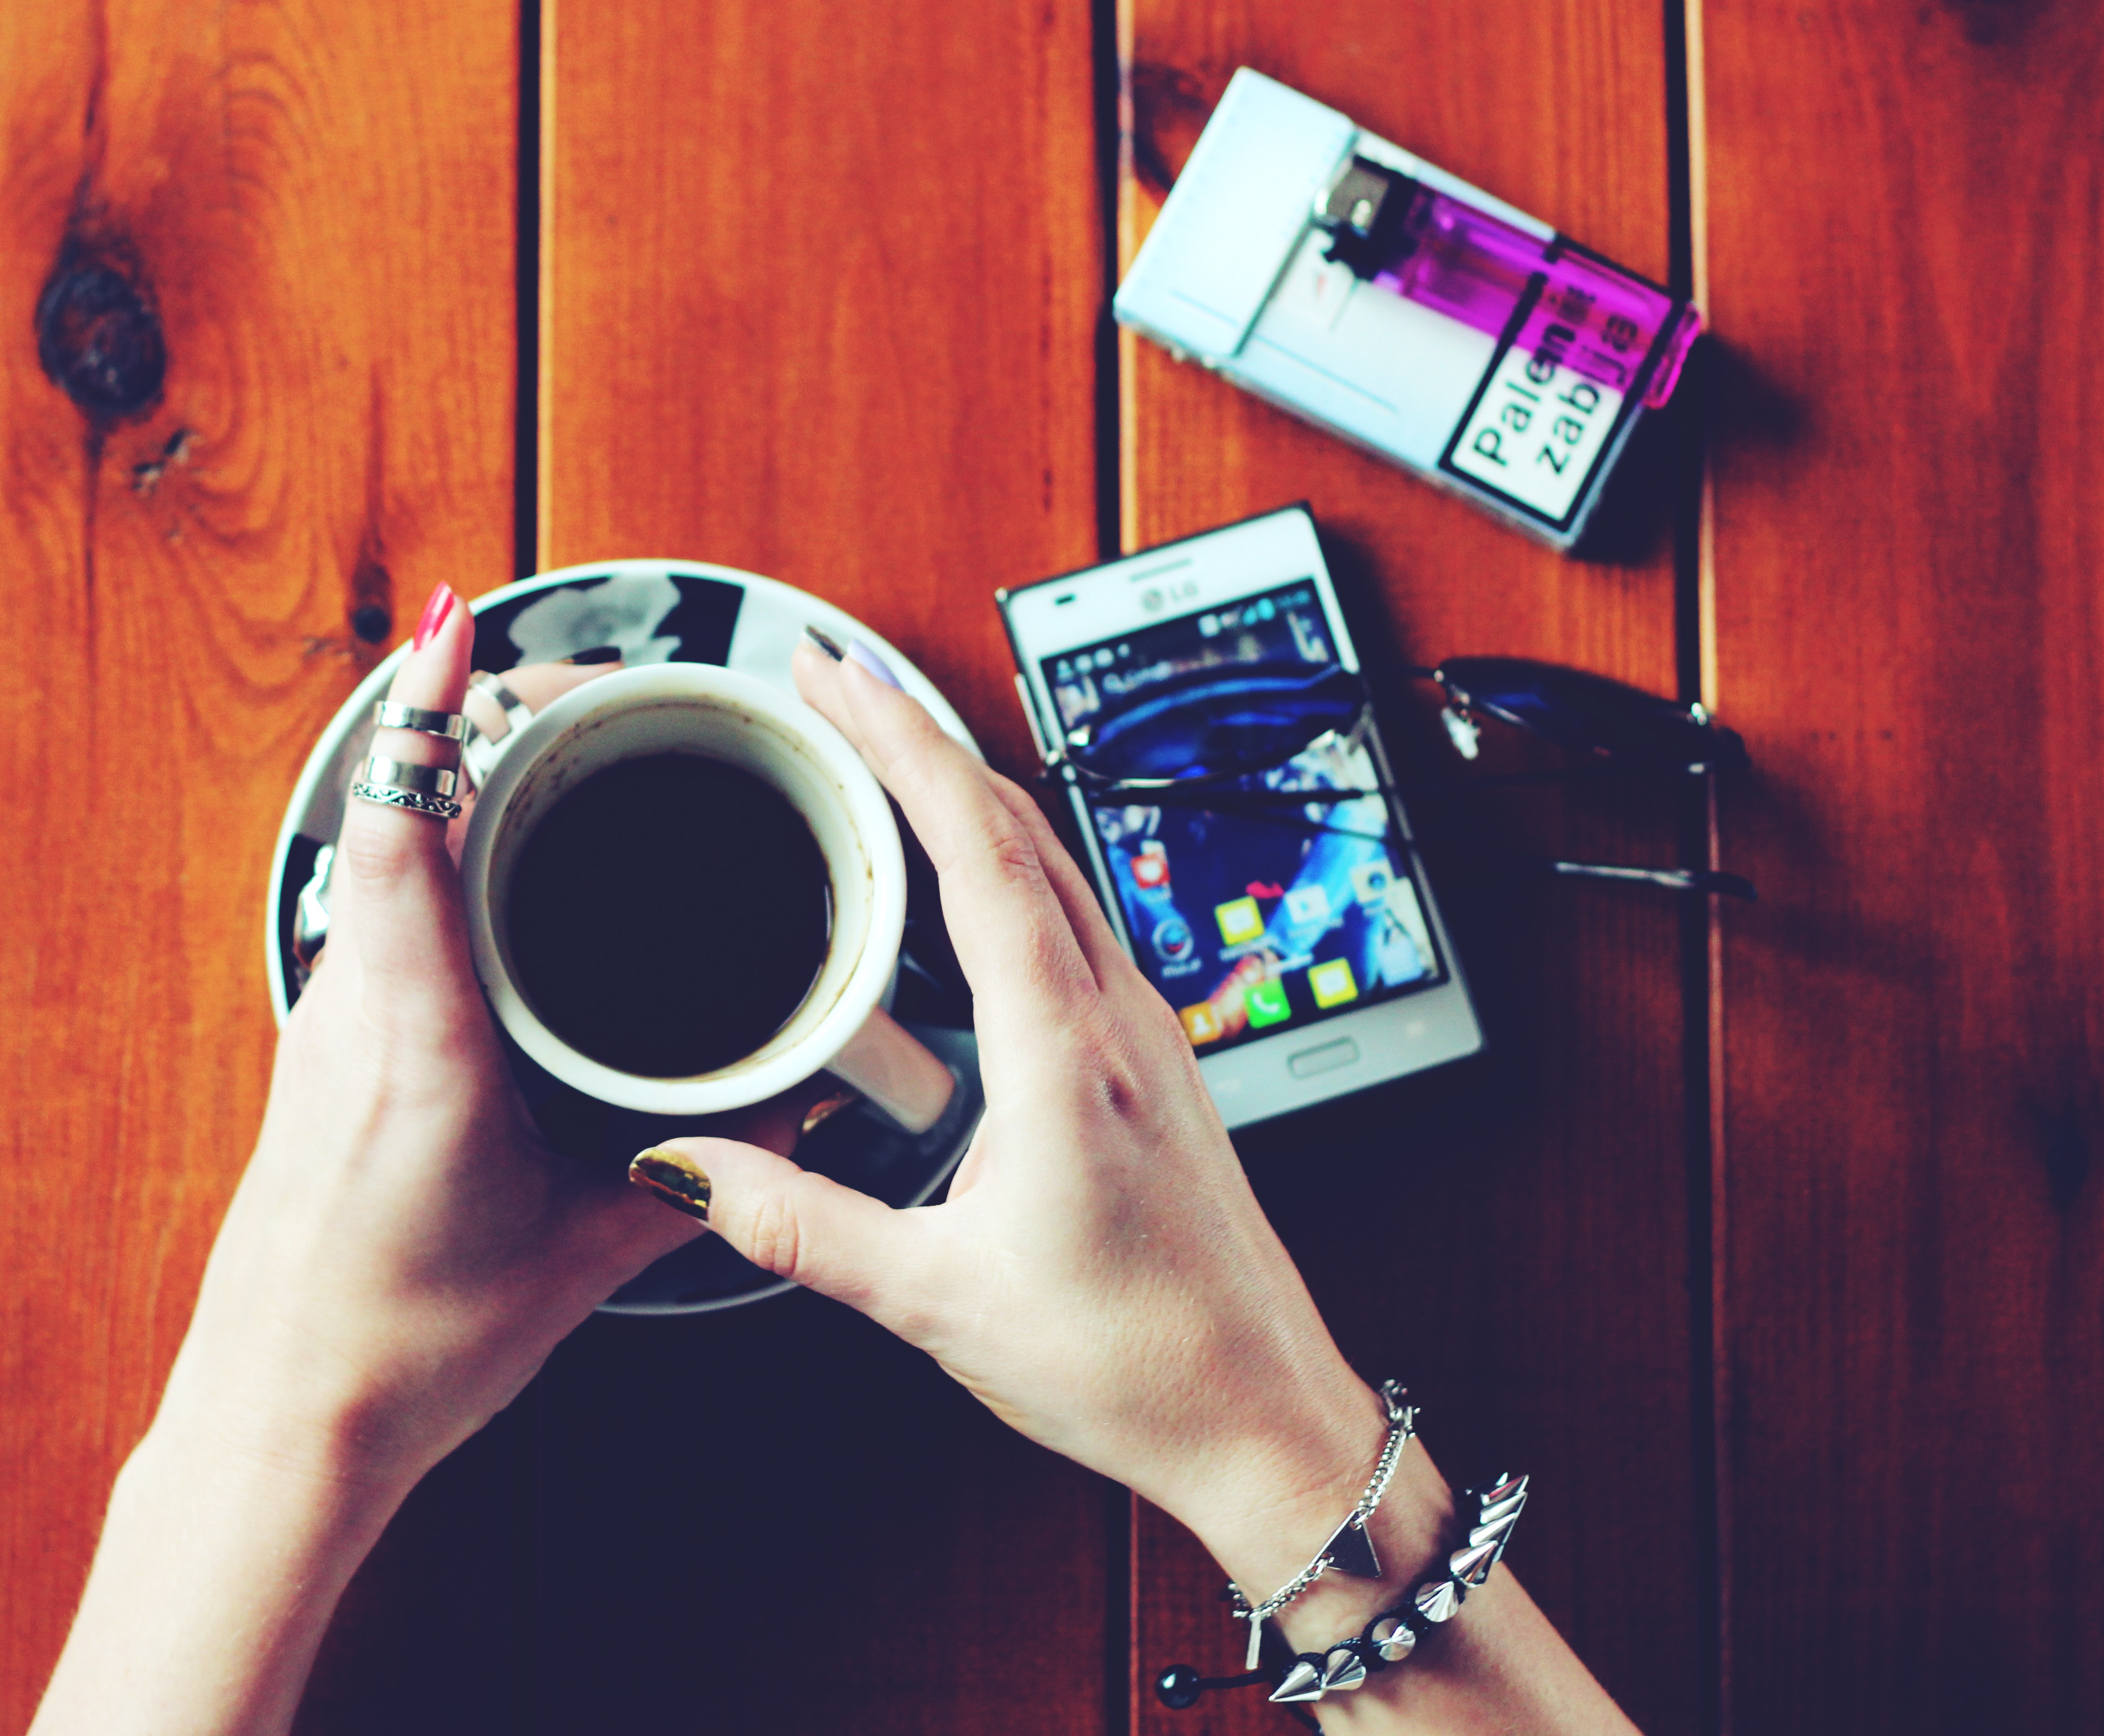 Hands with cup of coffee, Adult, Jewelry, Telephone, Technology, HQ Photo